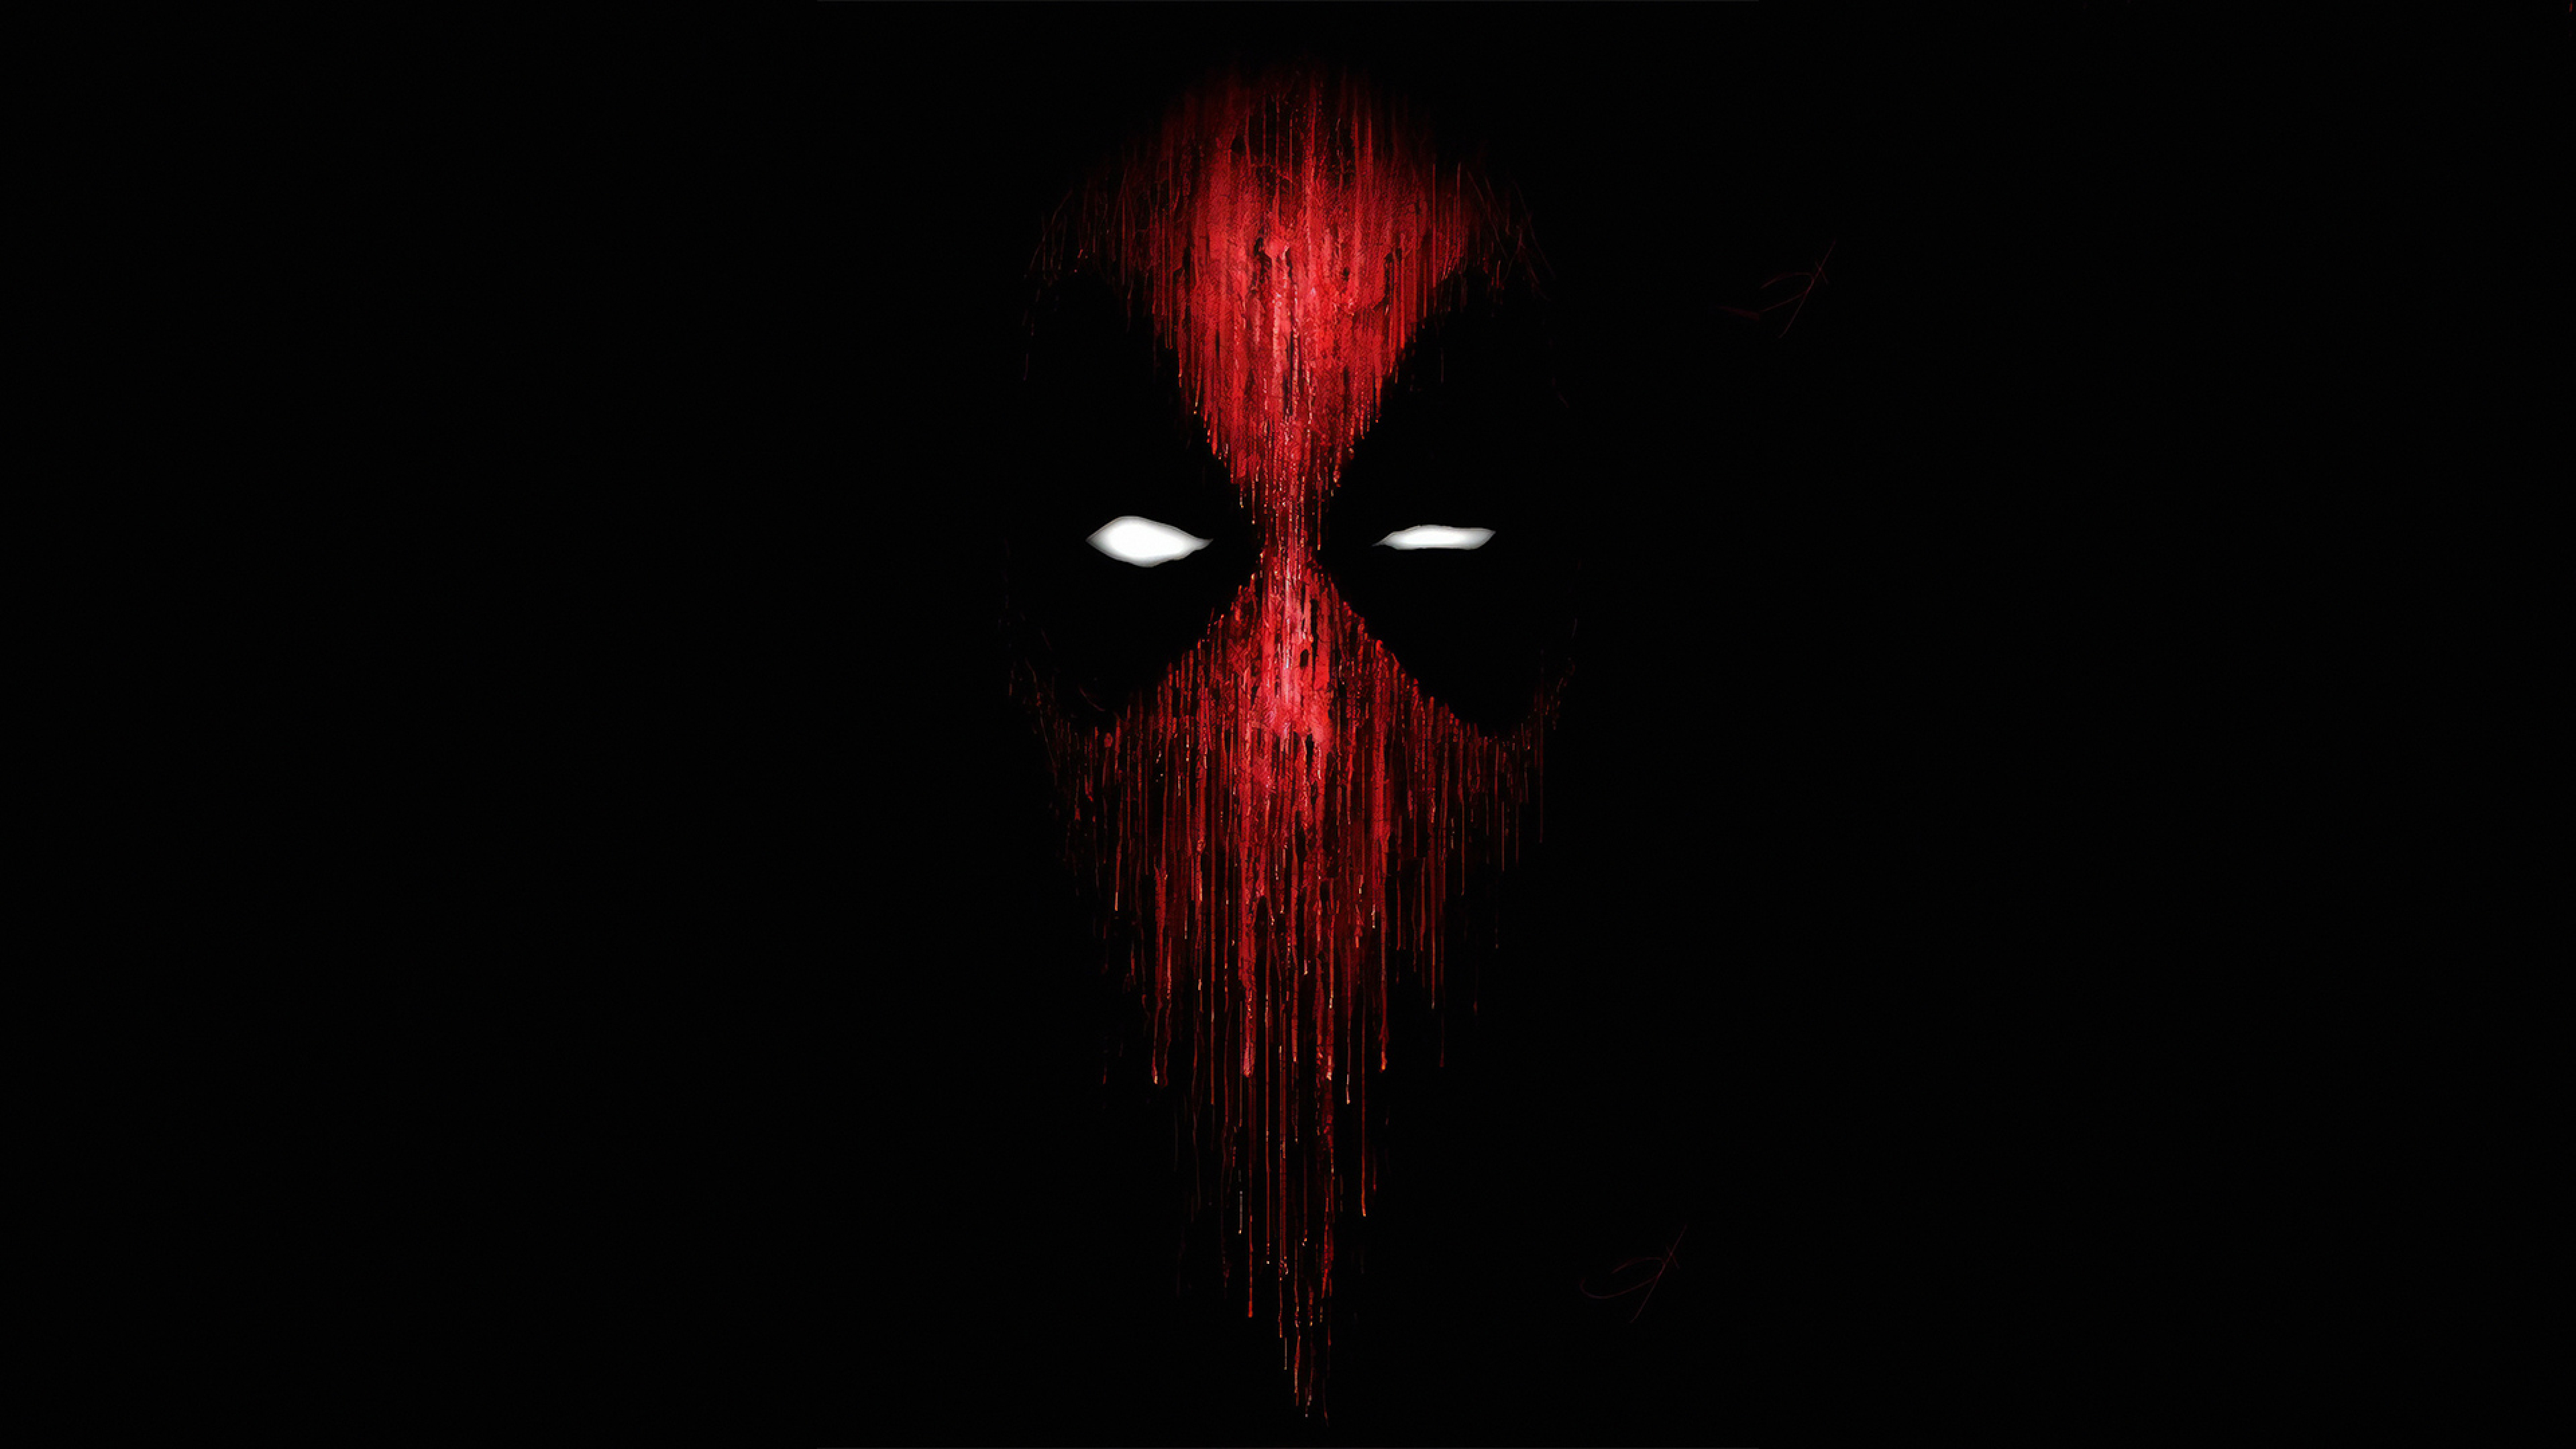 3840x2160 Deadpool Mask Minimalist 4k Wallpaper Hd Minimalist 4k Wallpapers Images Photos And Background